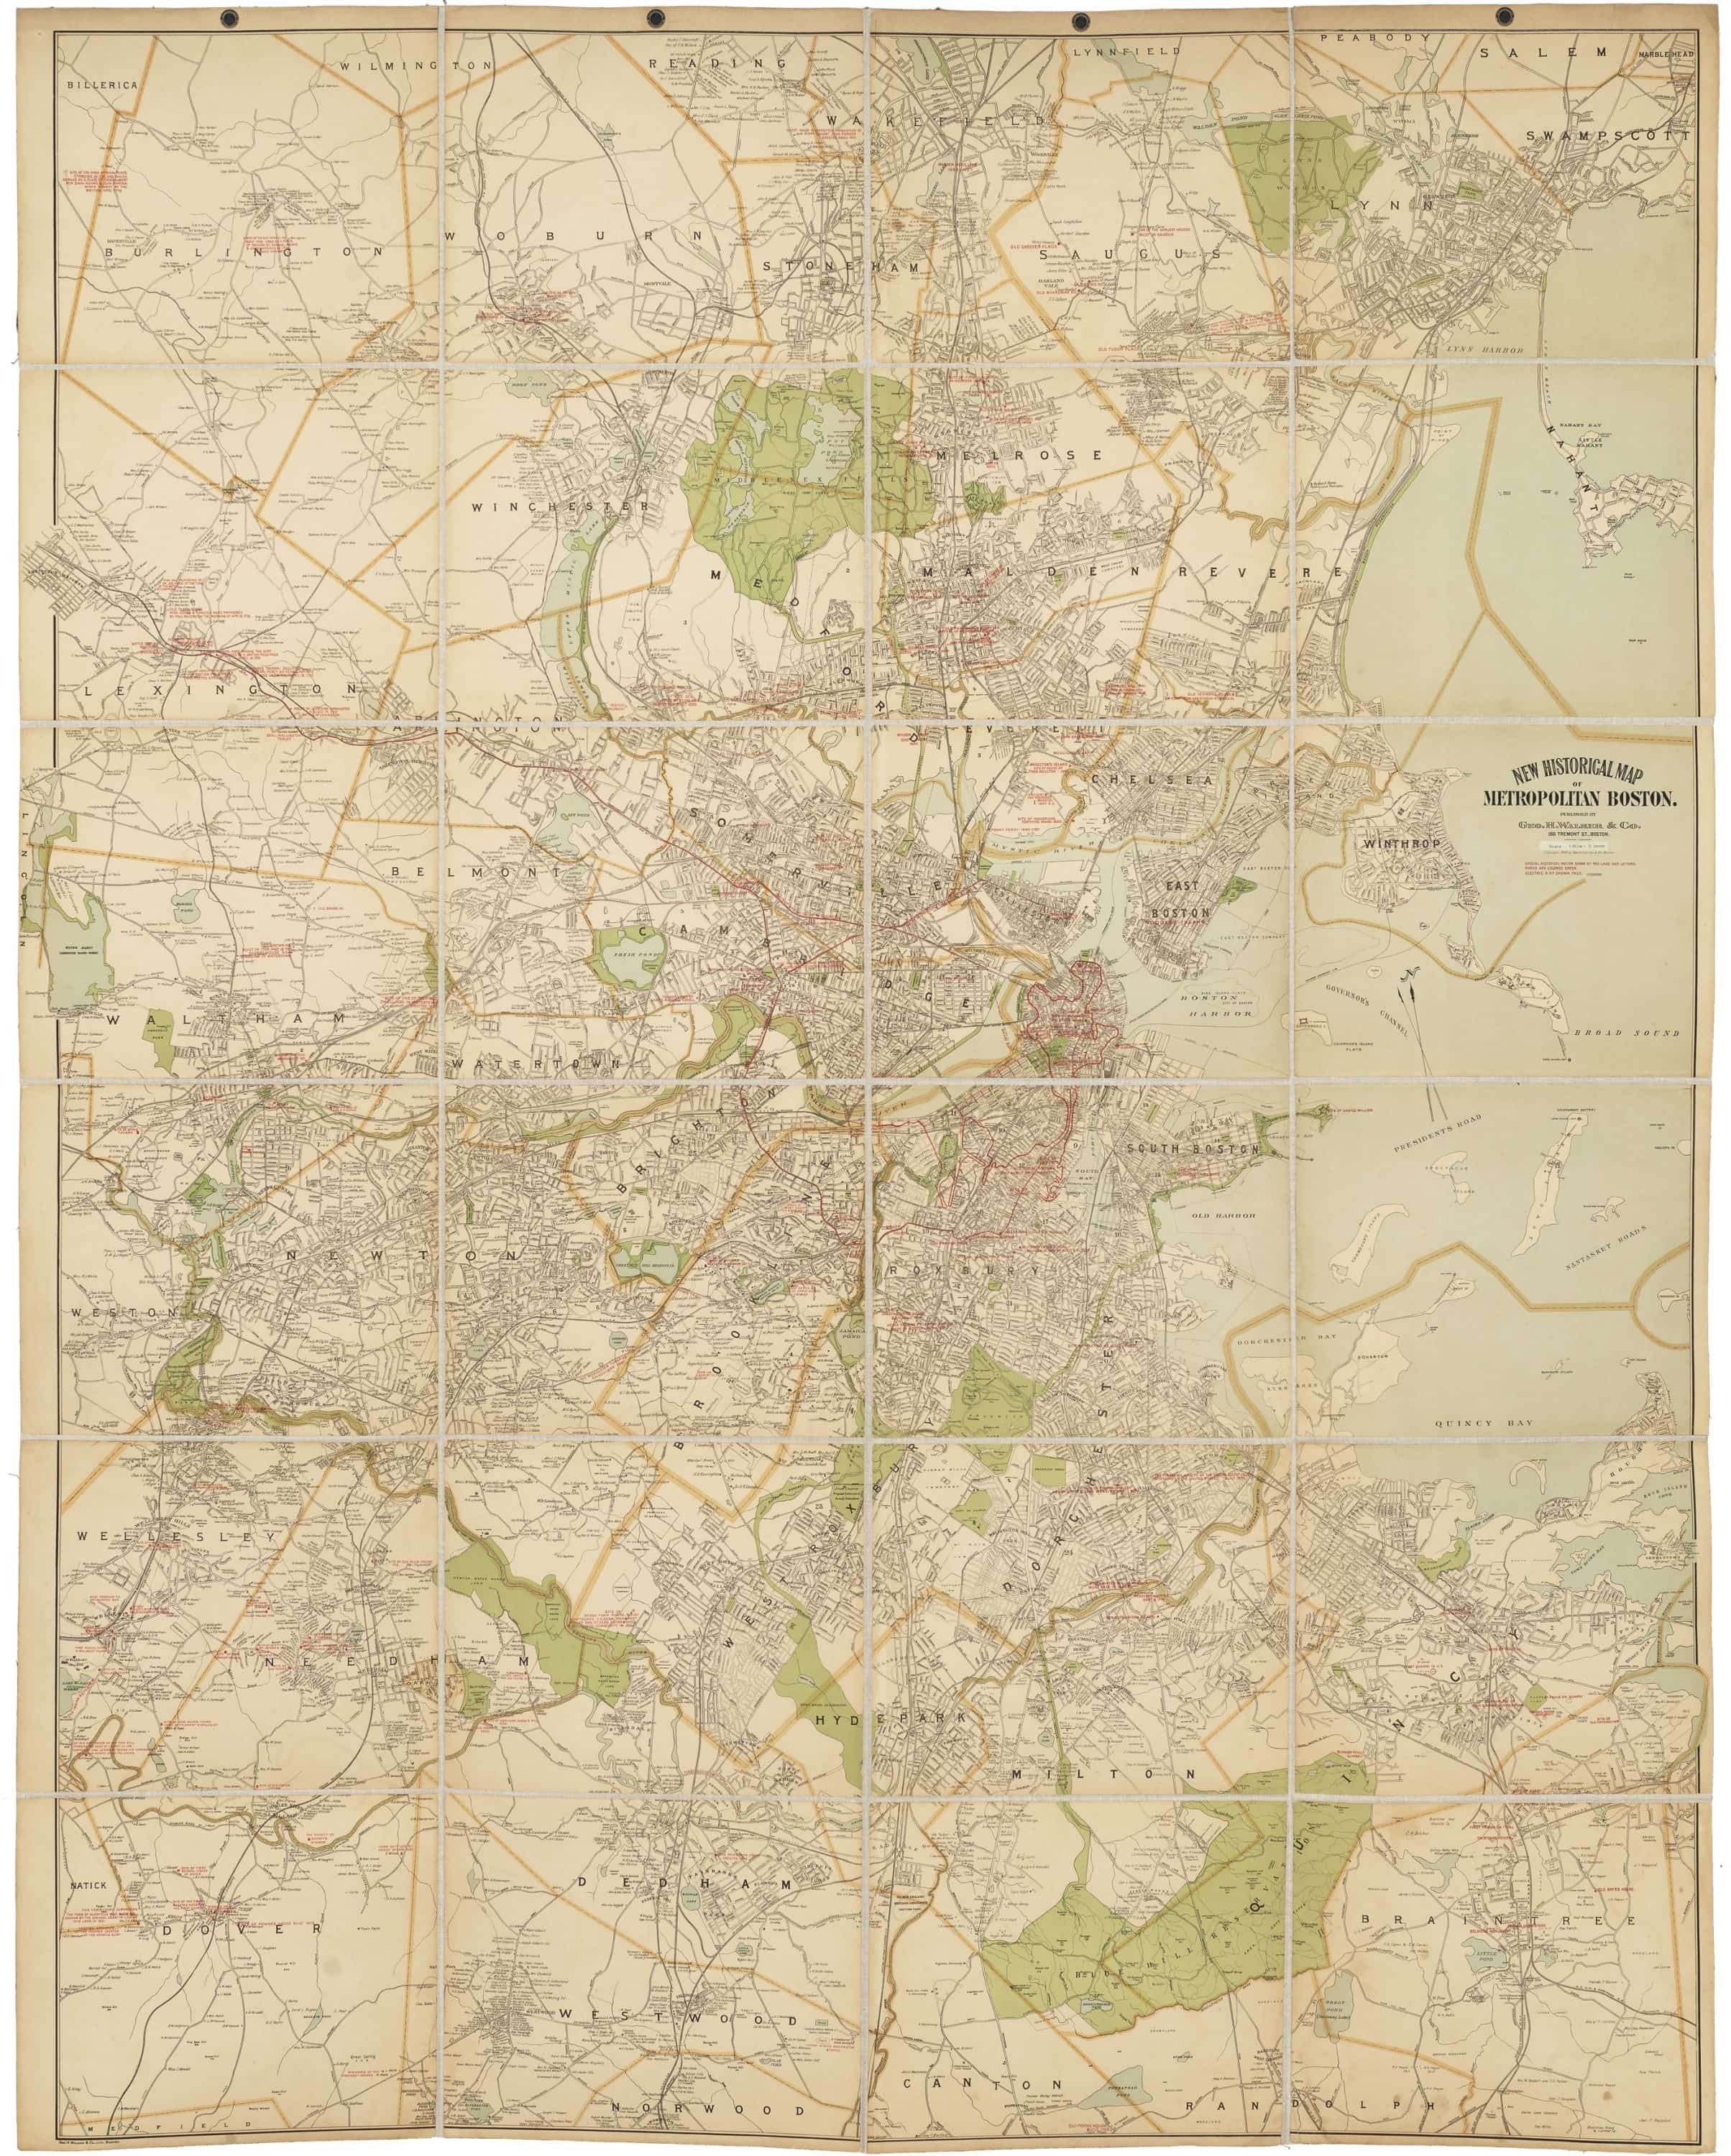 Mammoth historical map of Boston and its metropolitan area ... on oarfish map, bakersfield street map, tonalea map, land of make believe map, tolleson map, sierra vista map, ak-chin map, tower falls map, hannagan meadow map, dragoon map, heber overgaard map, deep creek hot springs california map, mono lake map, the hole map, la jolla shores map, cave creek regional park map, oracle map, many farms map, national forest campground map, golden gate canyon state park map,